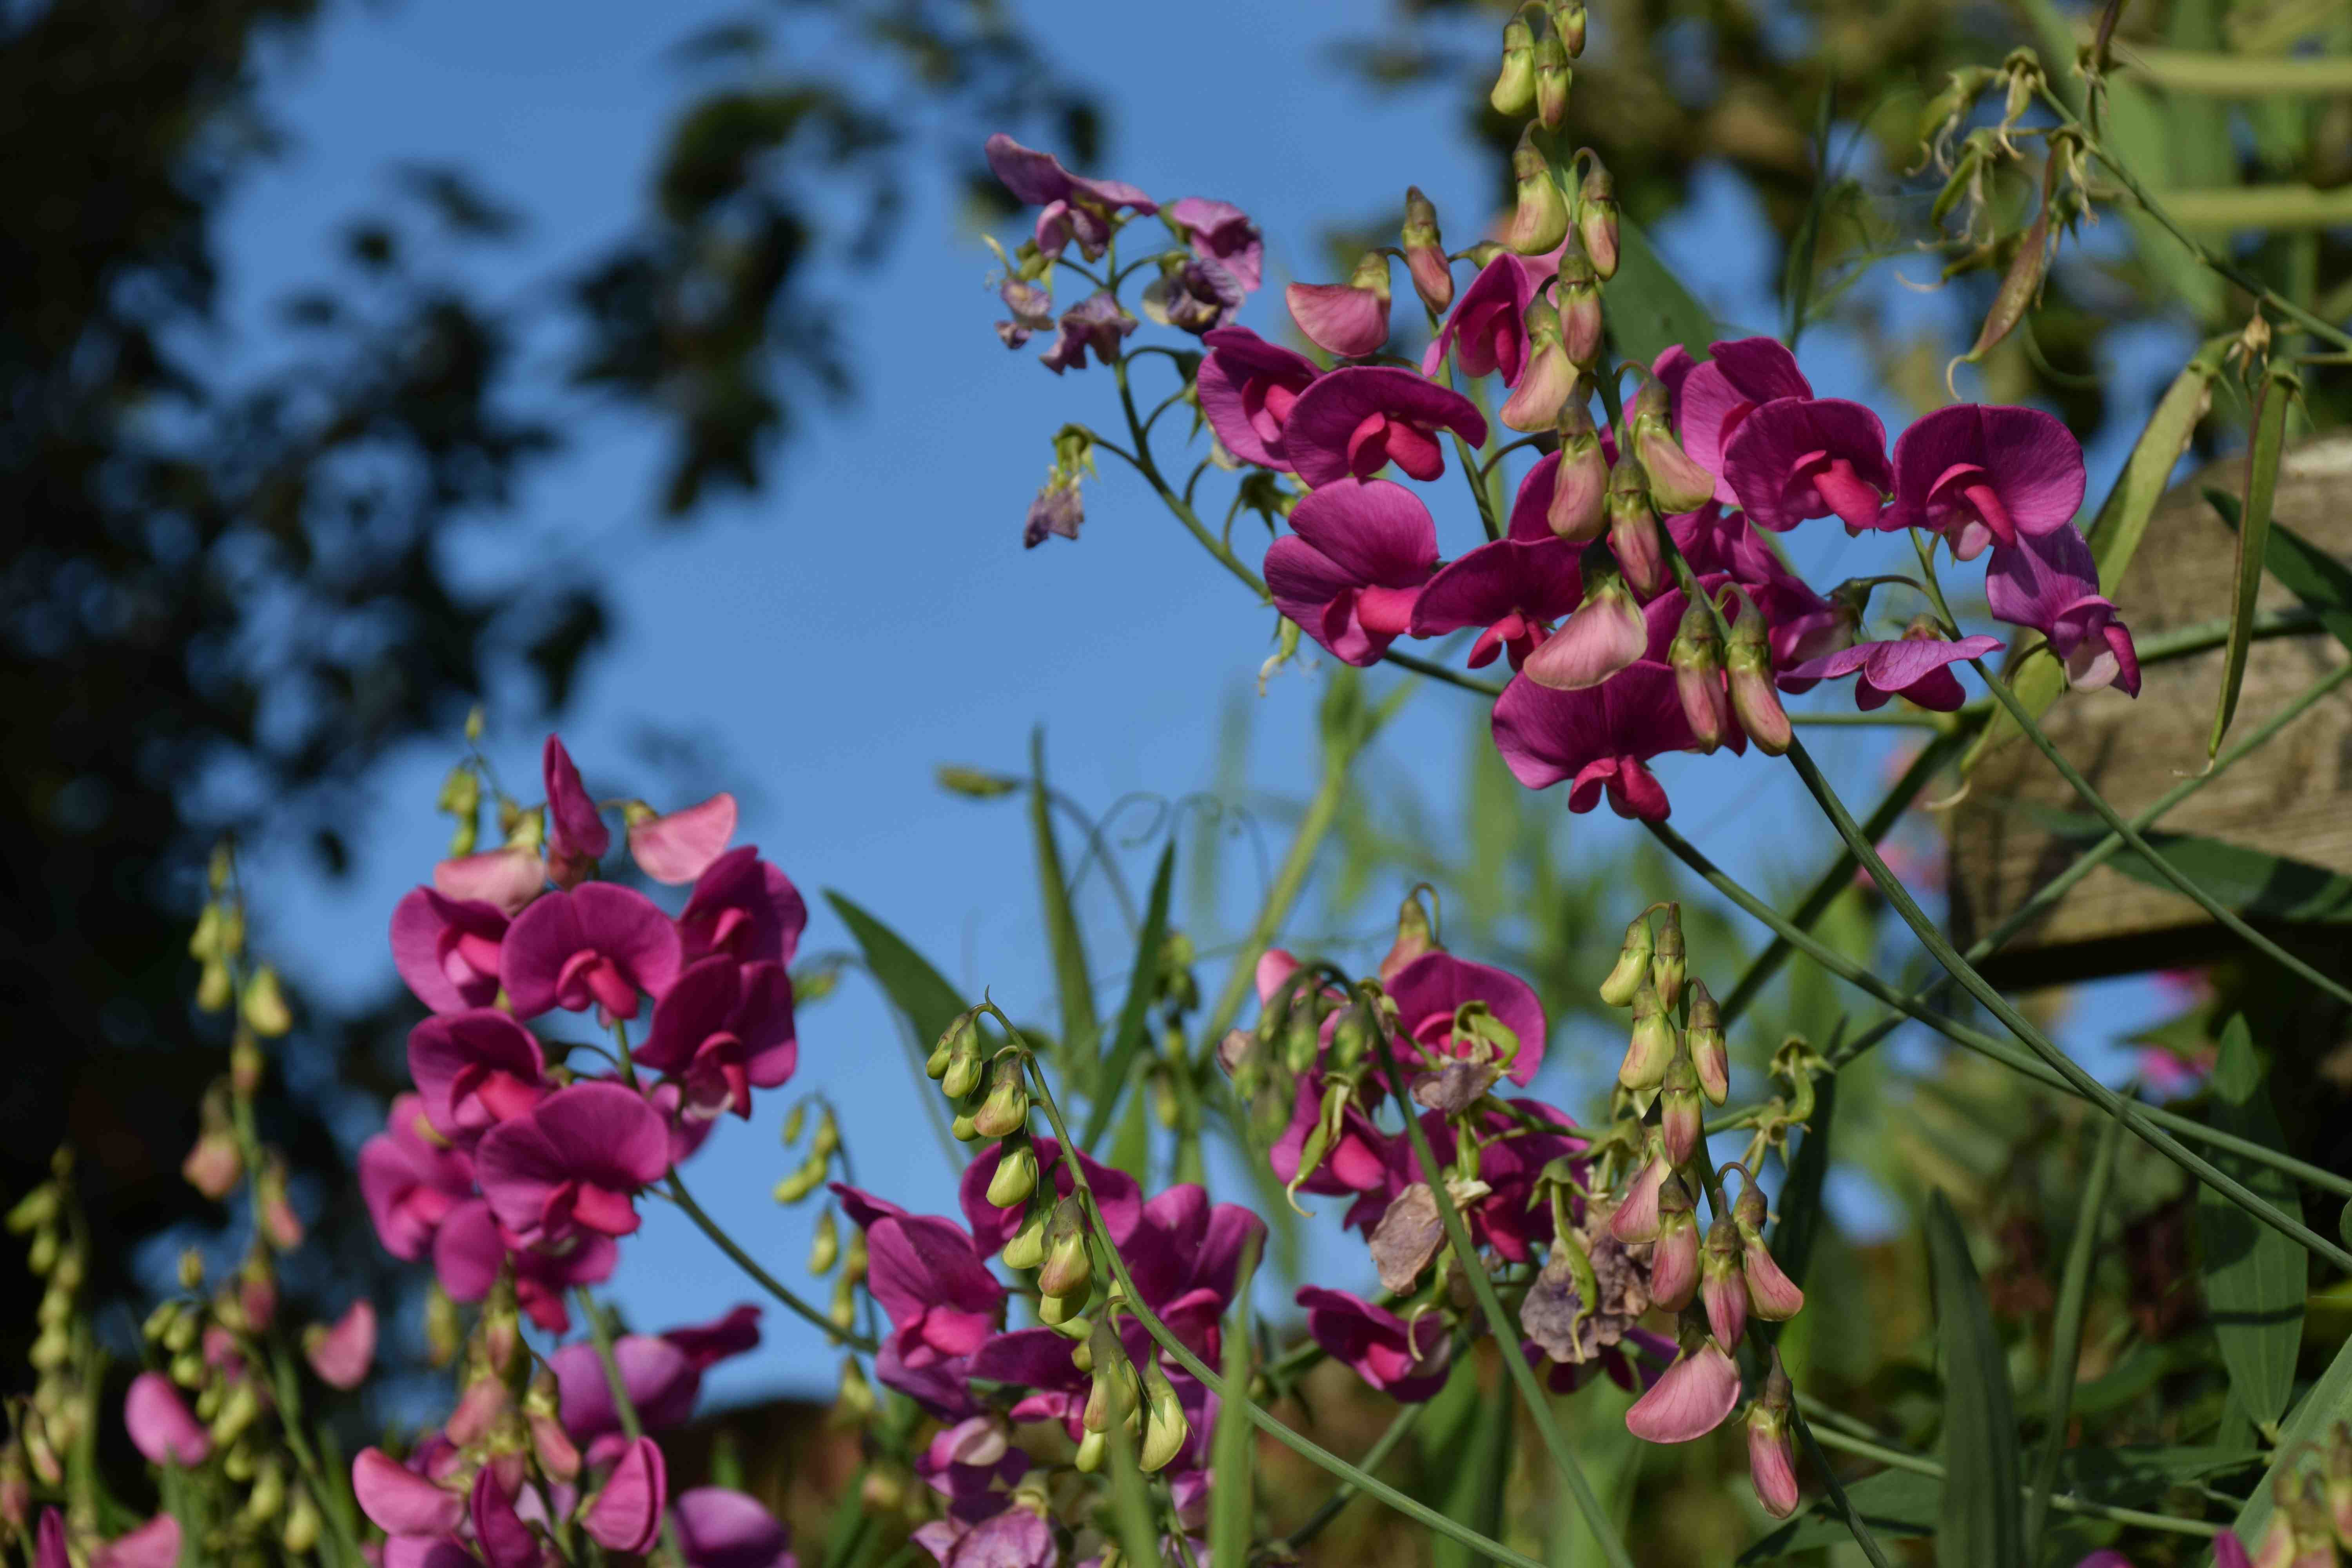 Everlasting sweet peas the biking gardener this is not really a myth but an annoying misapplication of a name the plant in question being the most commonly cultivated ornamental pea species izmirmasajfo